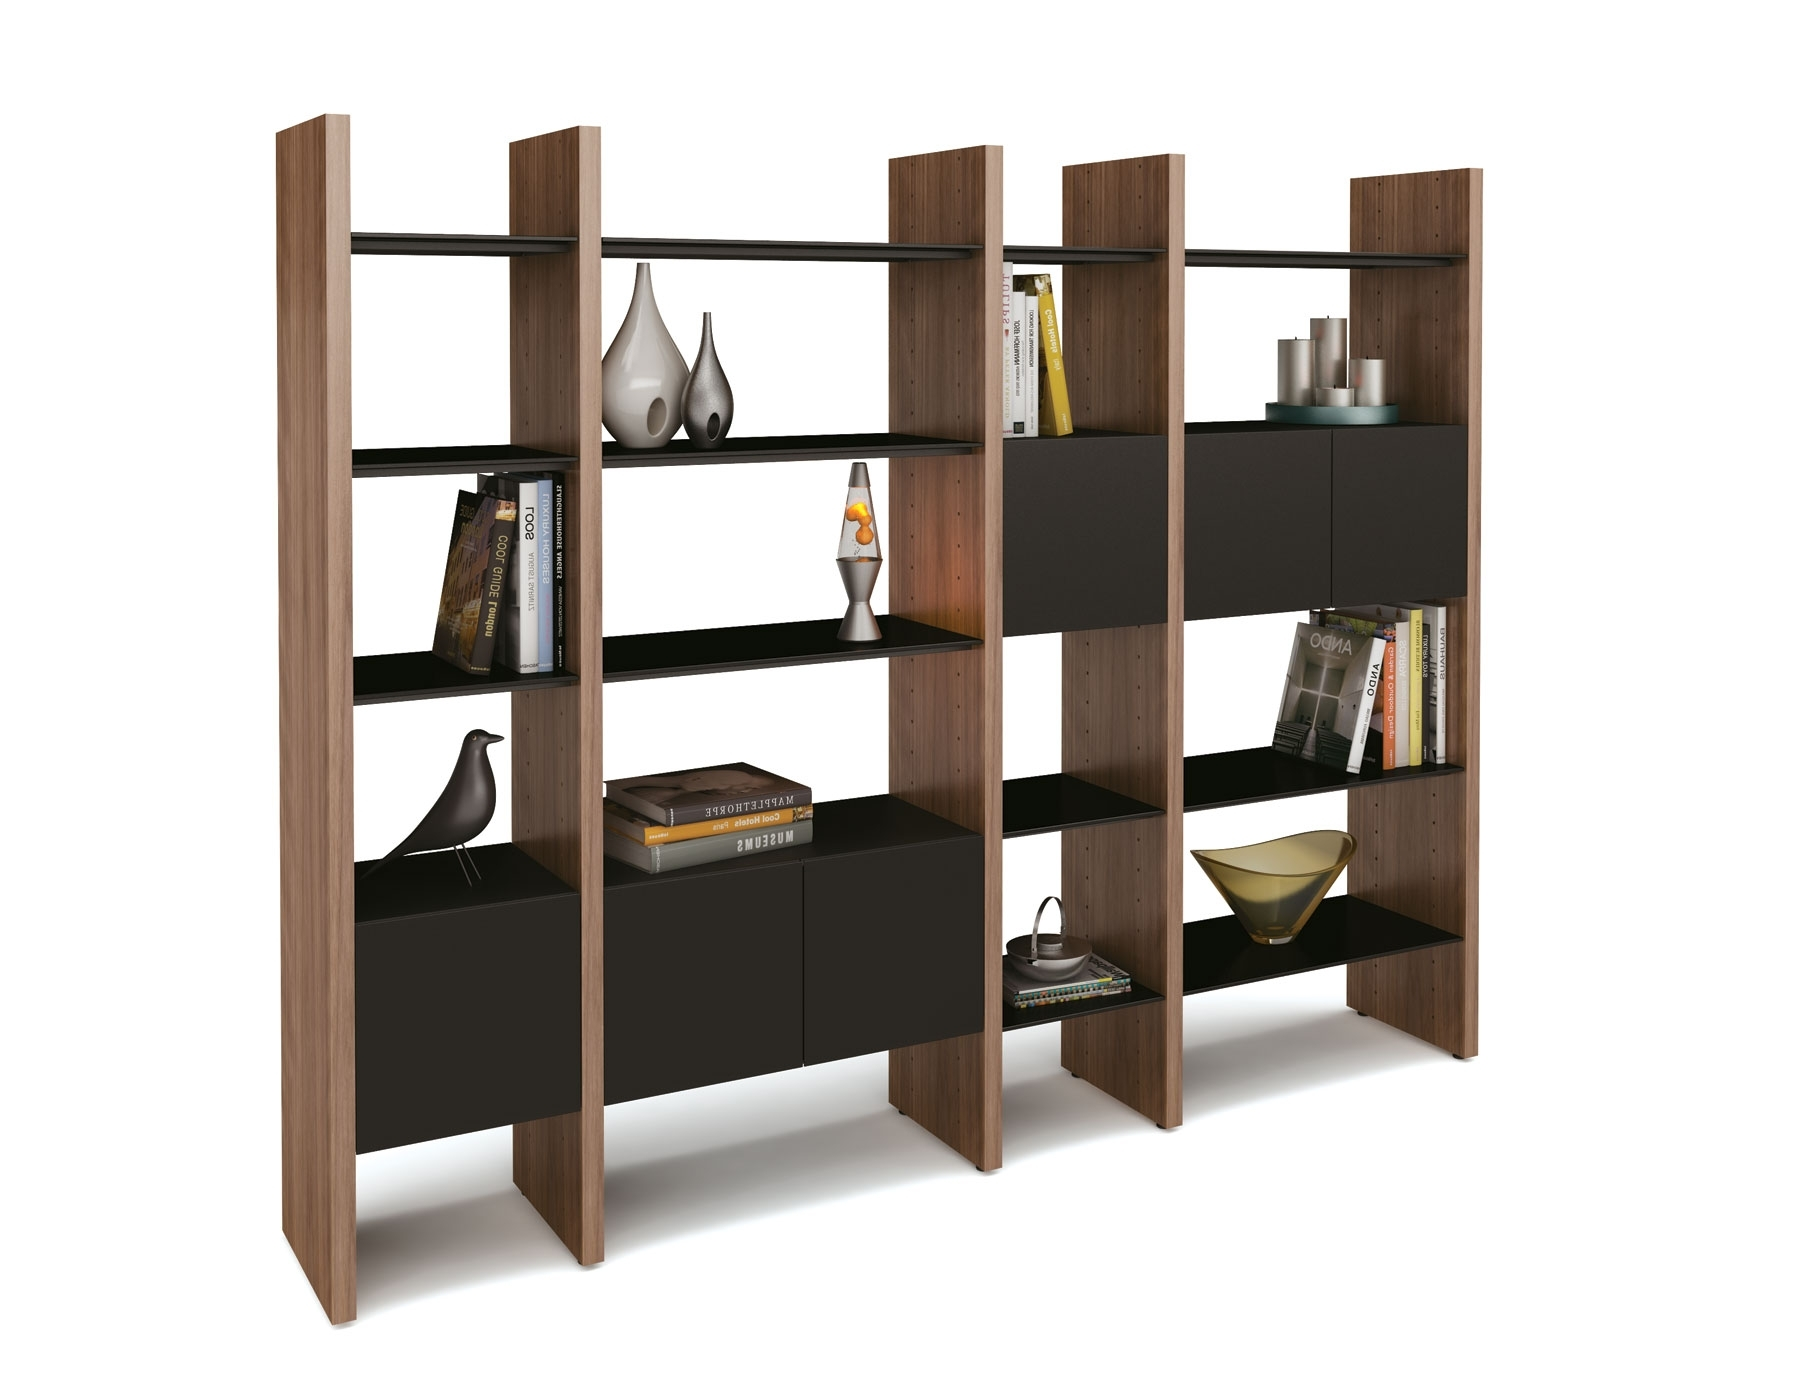 Contemporary Oak Shelving Units With Regard To Current Outstanding Modern Shelving Units With Wooden Divider In Brown (View 5 of 15)